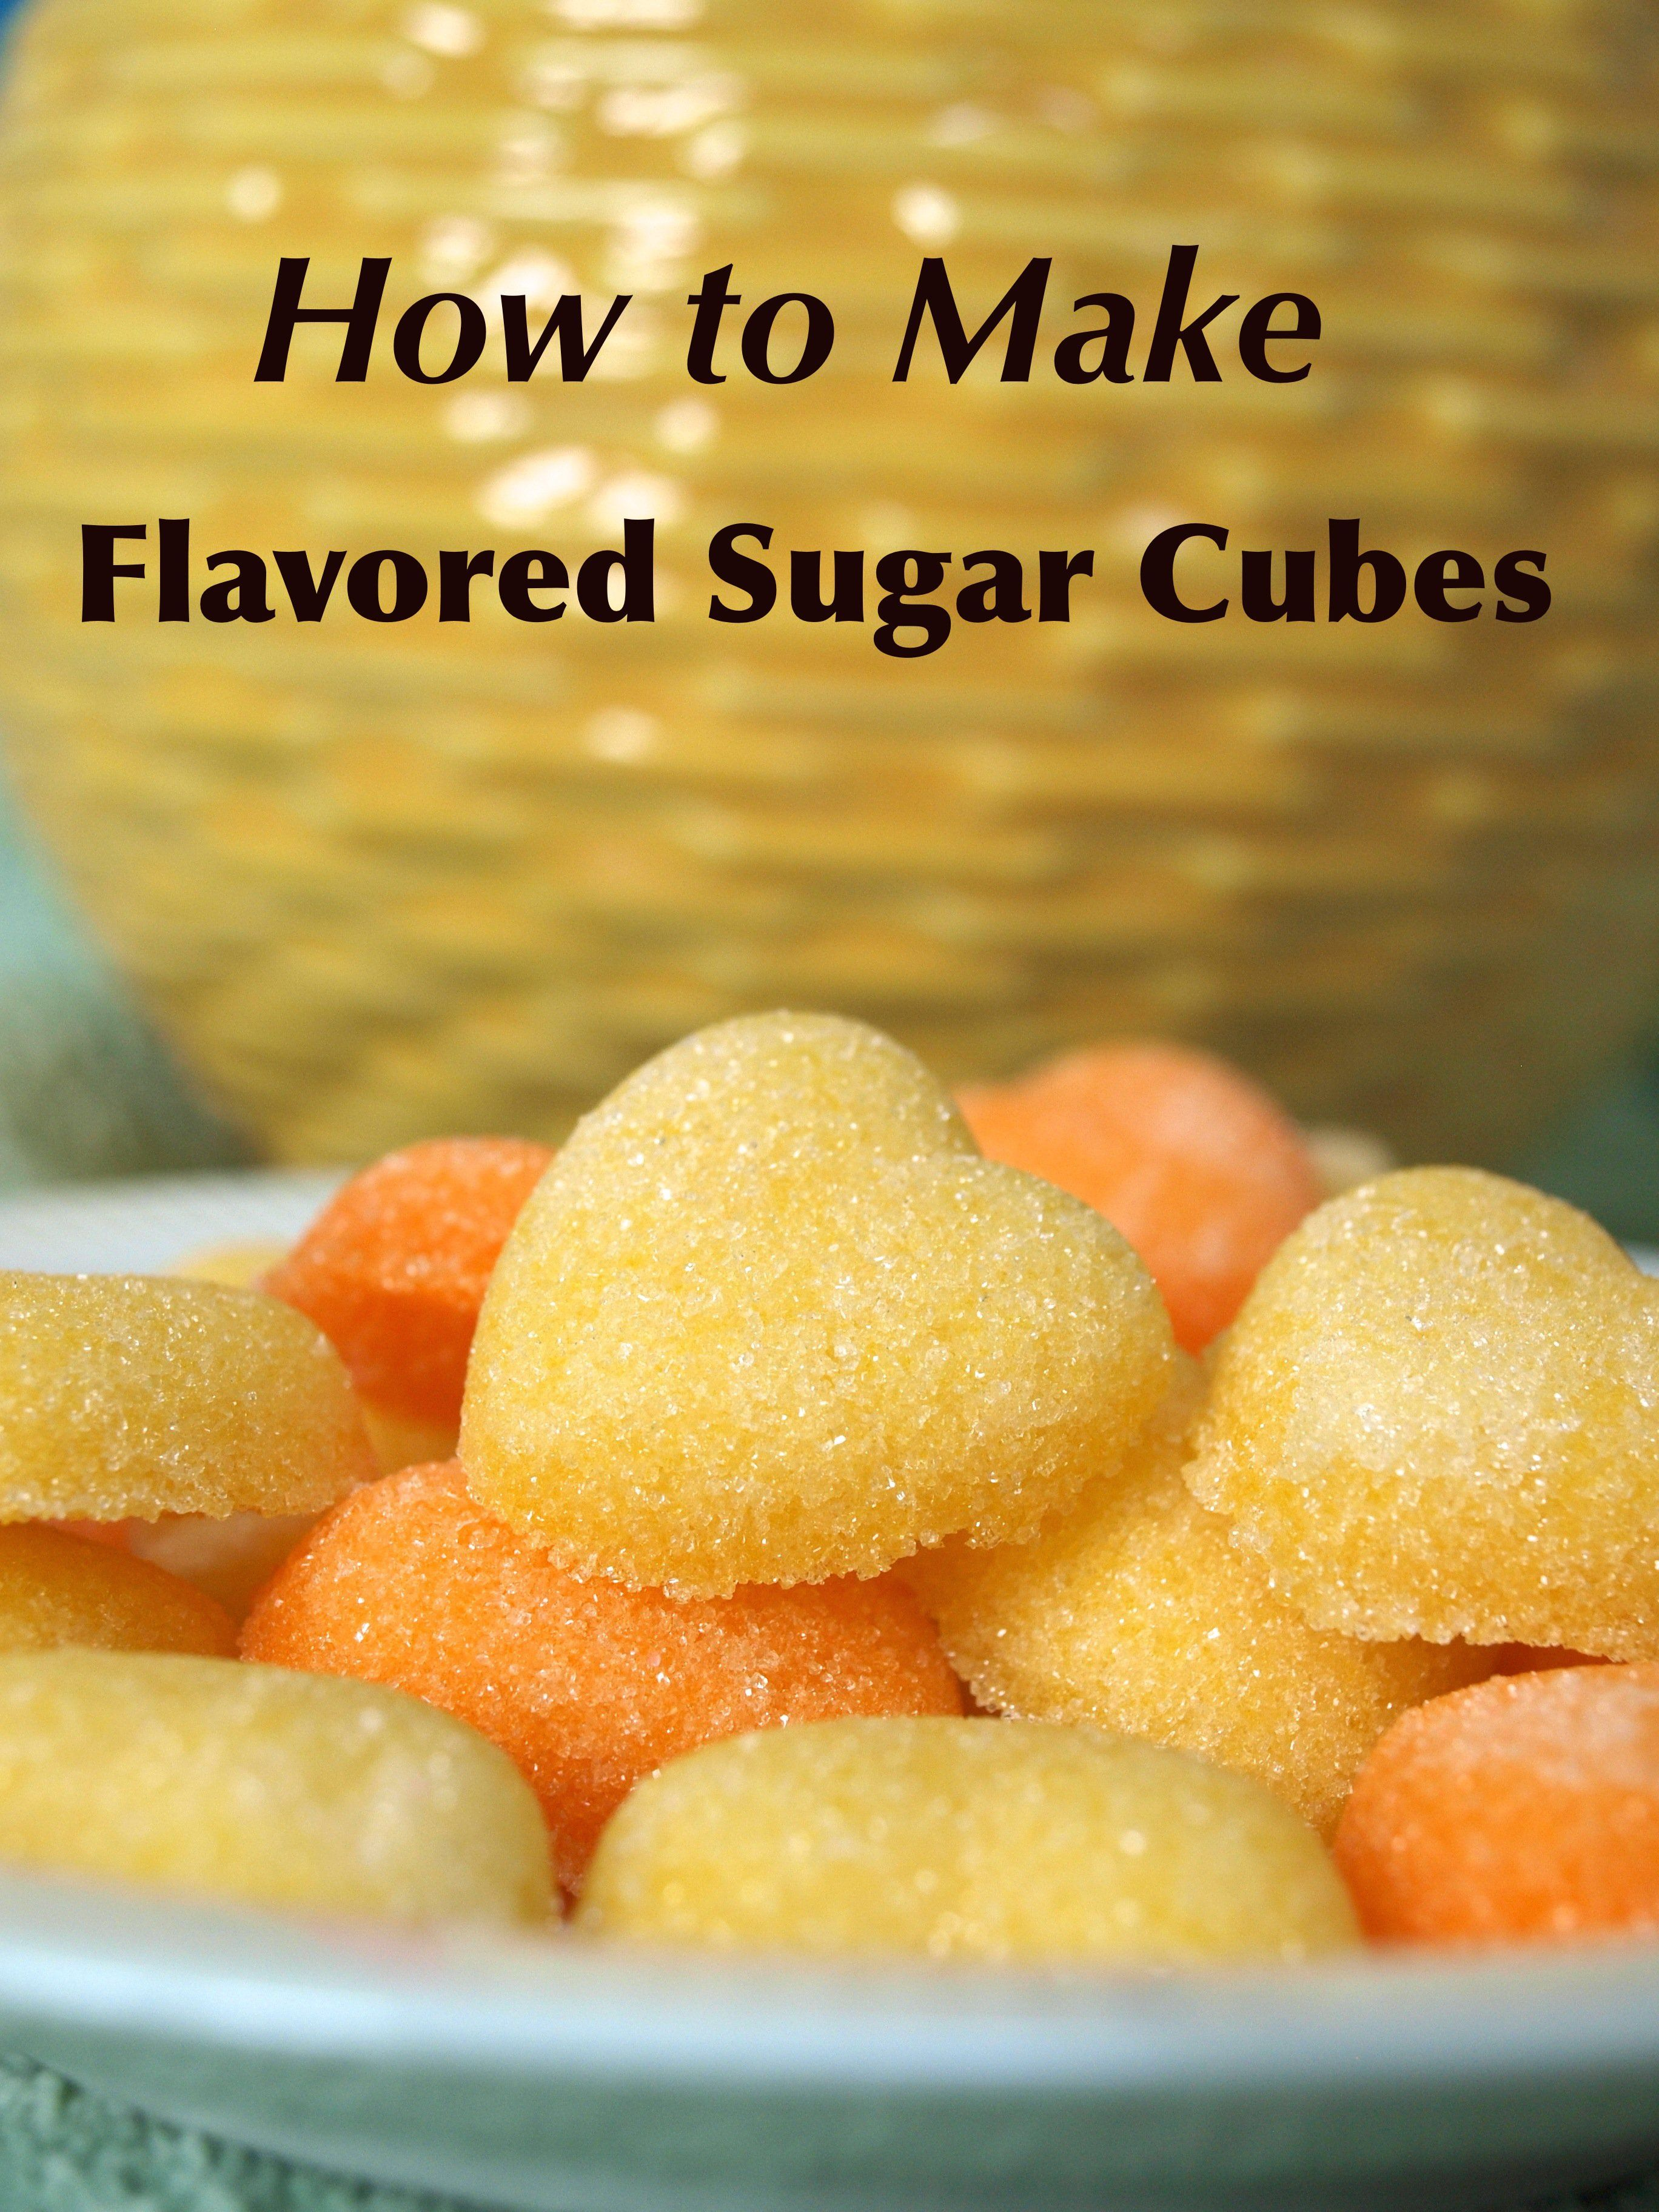 How to Make Flavored Sugar Cubes